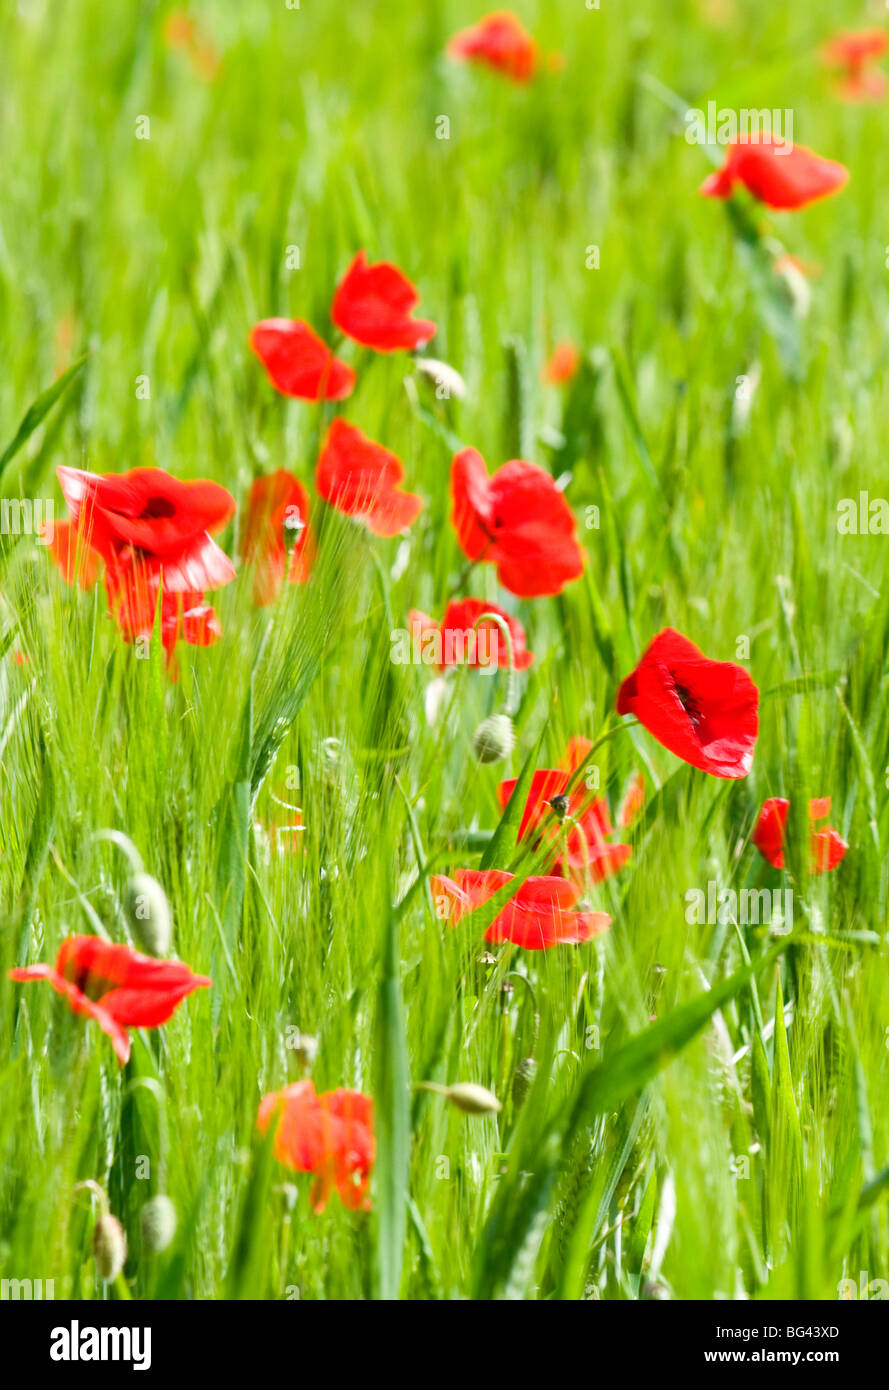 Poppies in Valle de Orcia, Tuscany, Italy - Stock Image